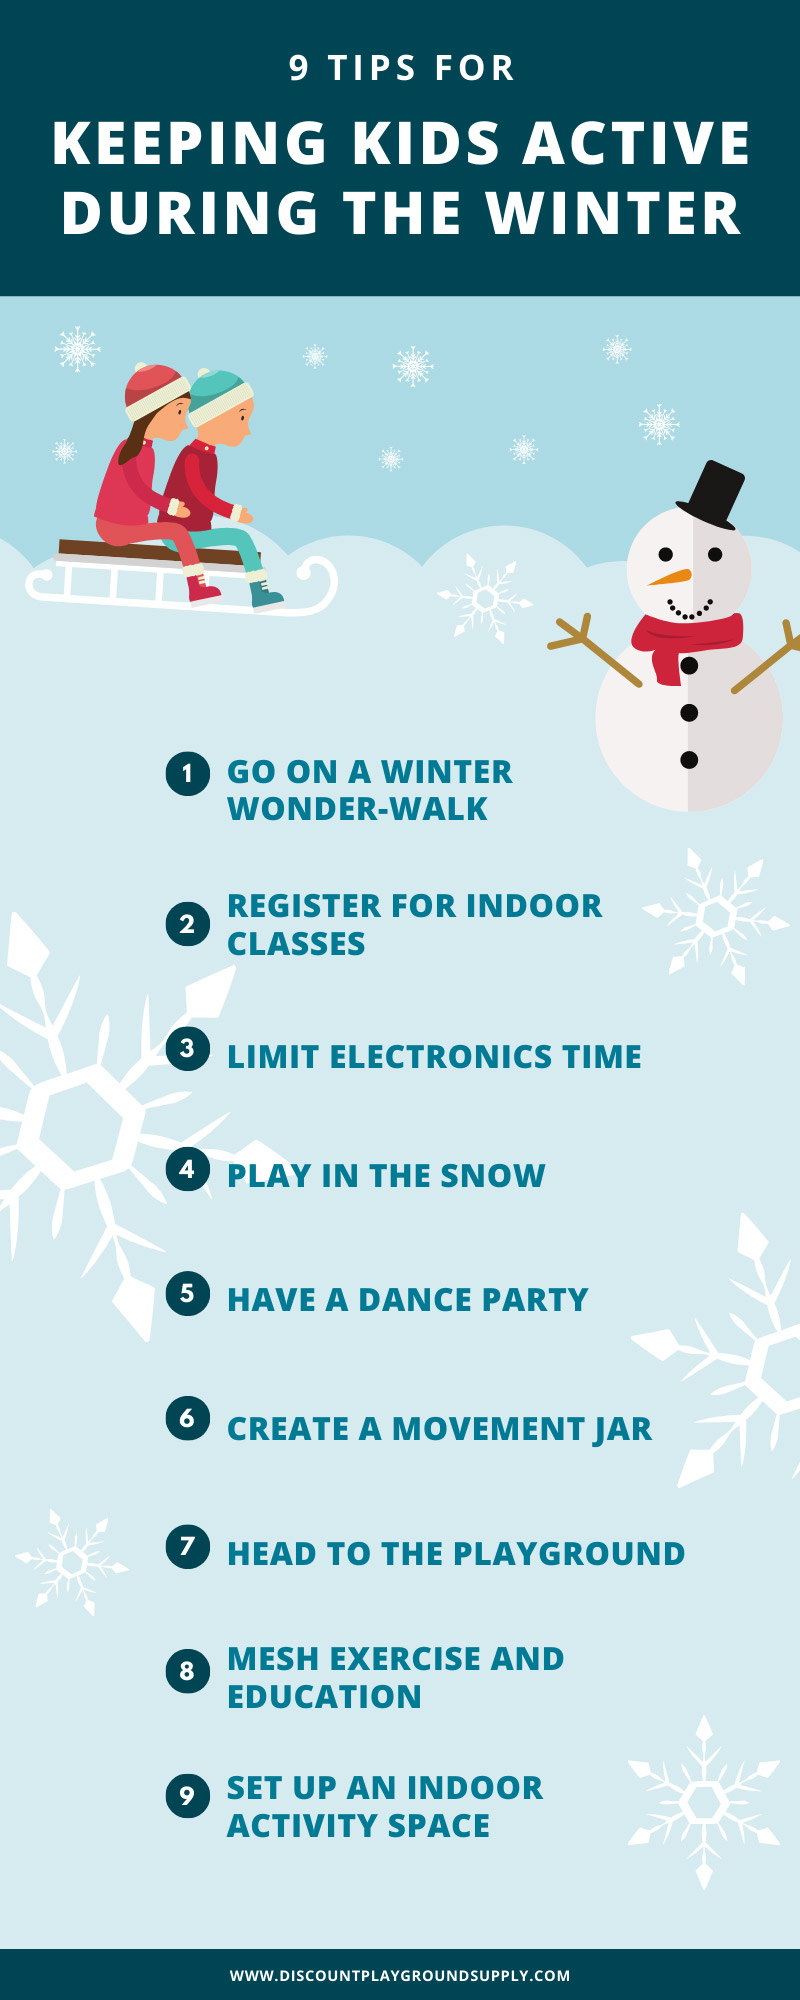 How to Keep Kids Active During the Winter